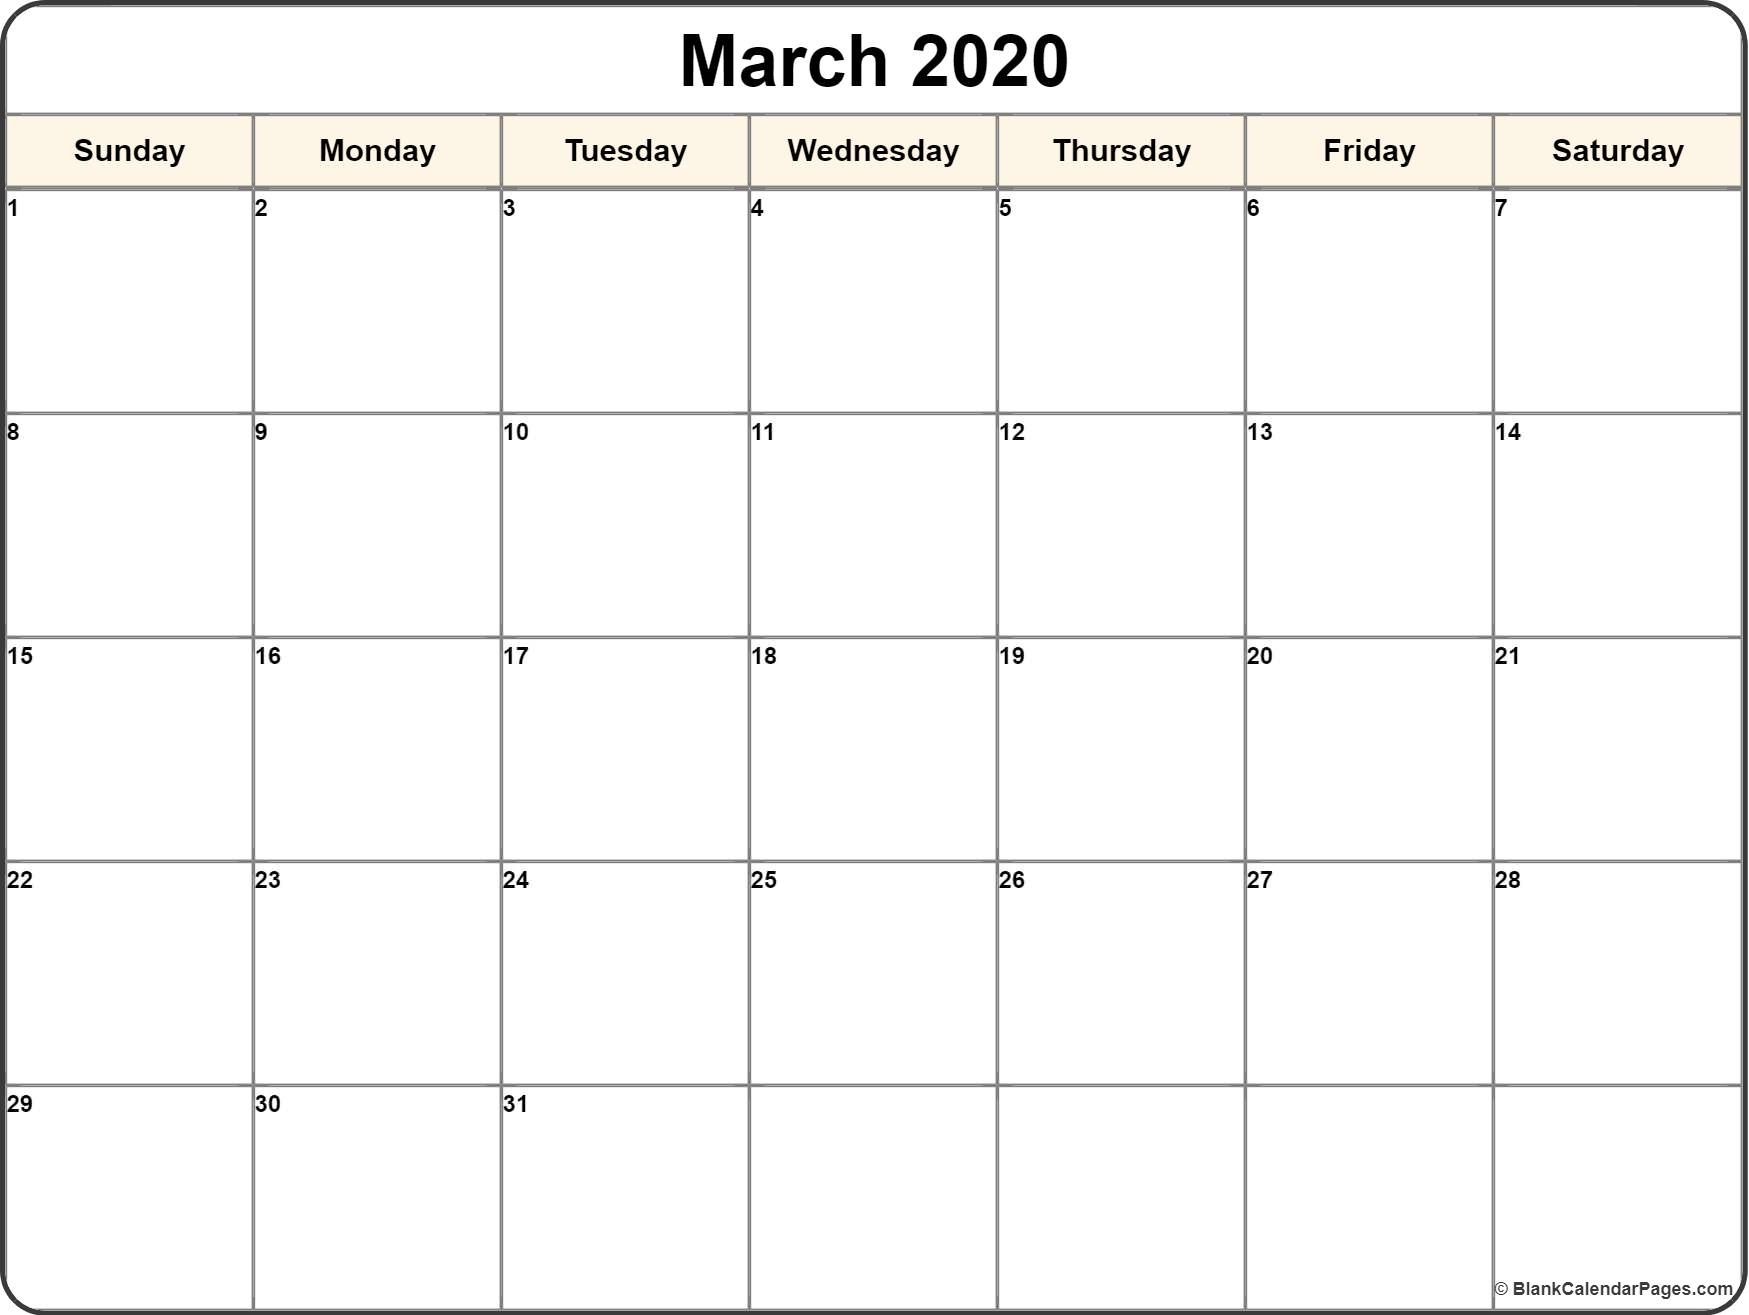 Calendar Template 2020 | One Page Calendar Printable in Free Printable Fill In Calendars 2020